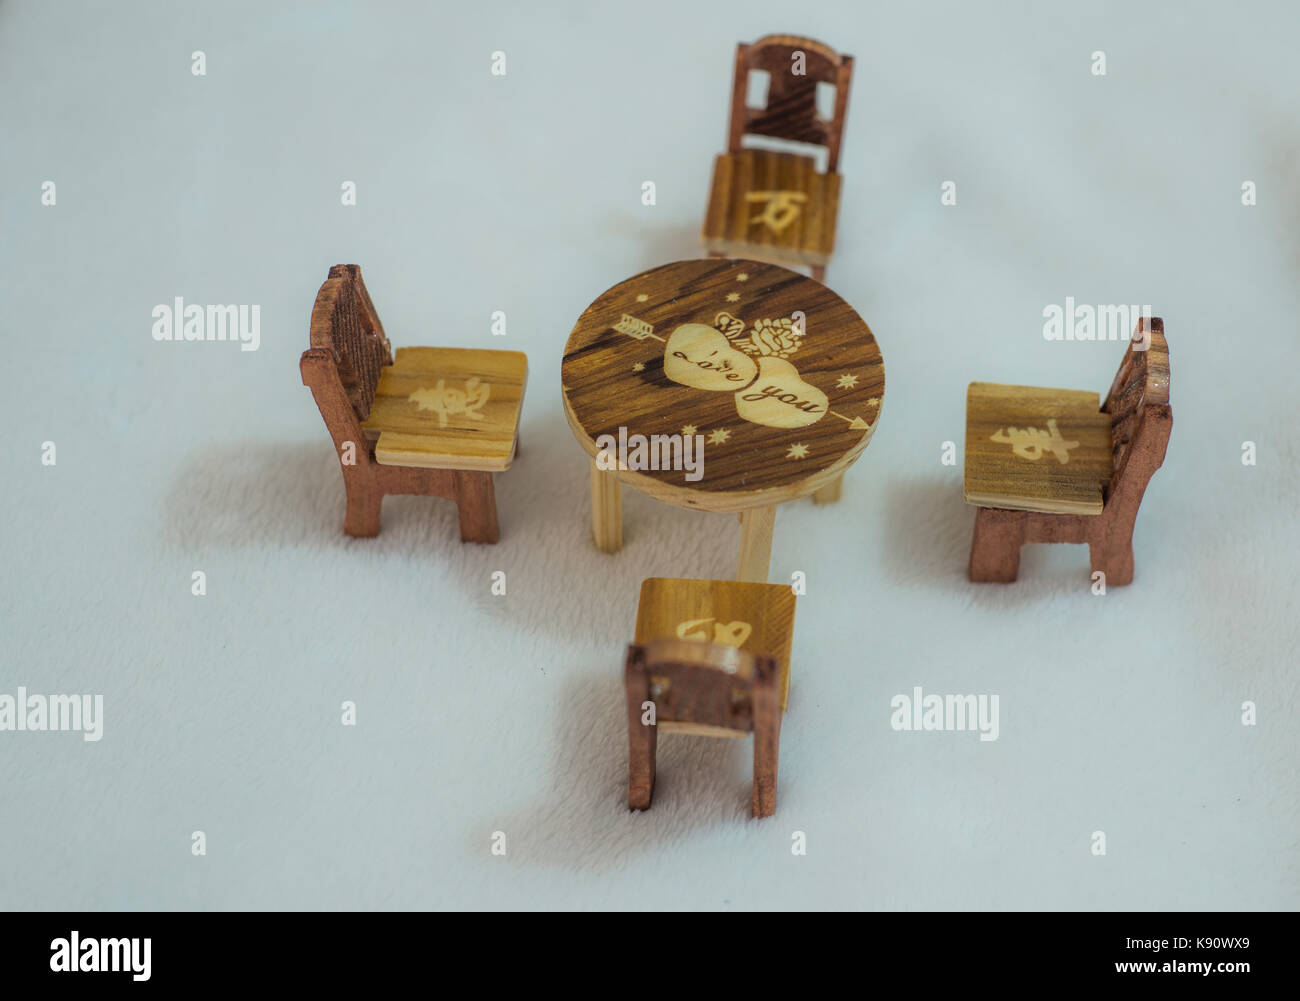 Miniature wooden table and chairs - Stock Image